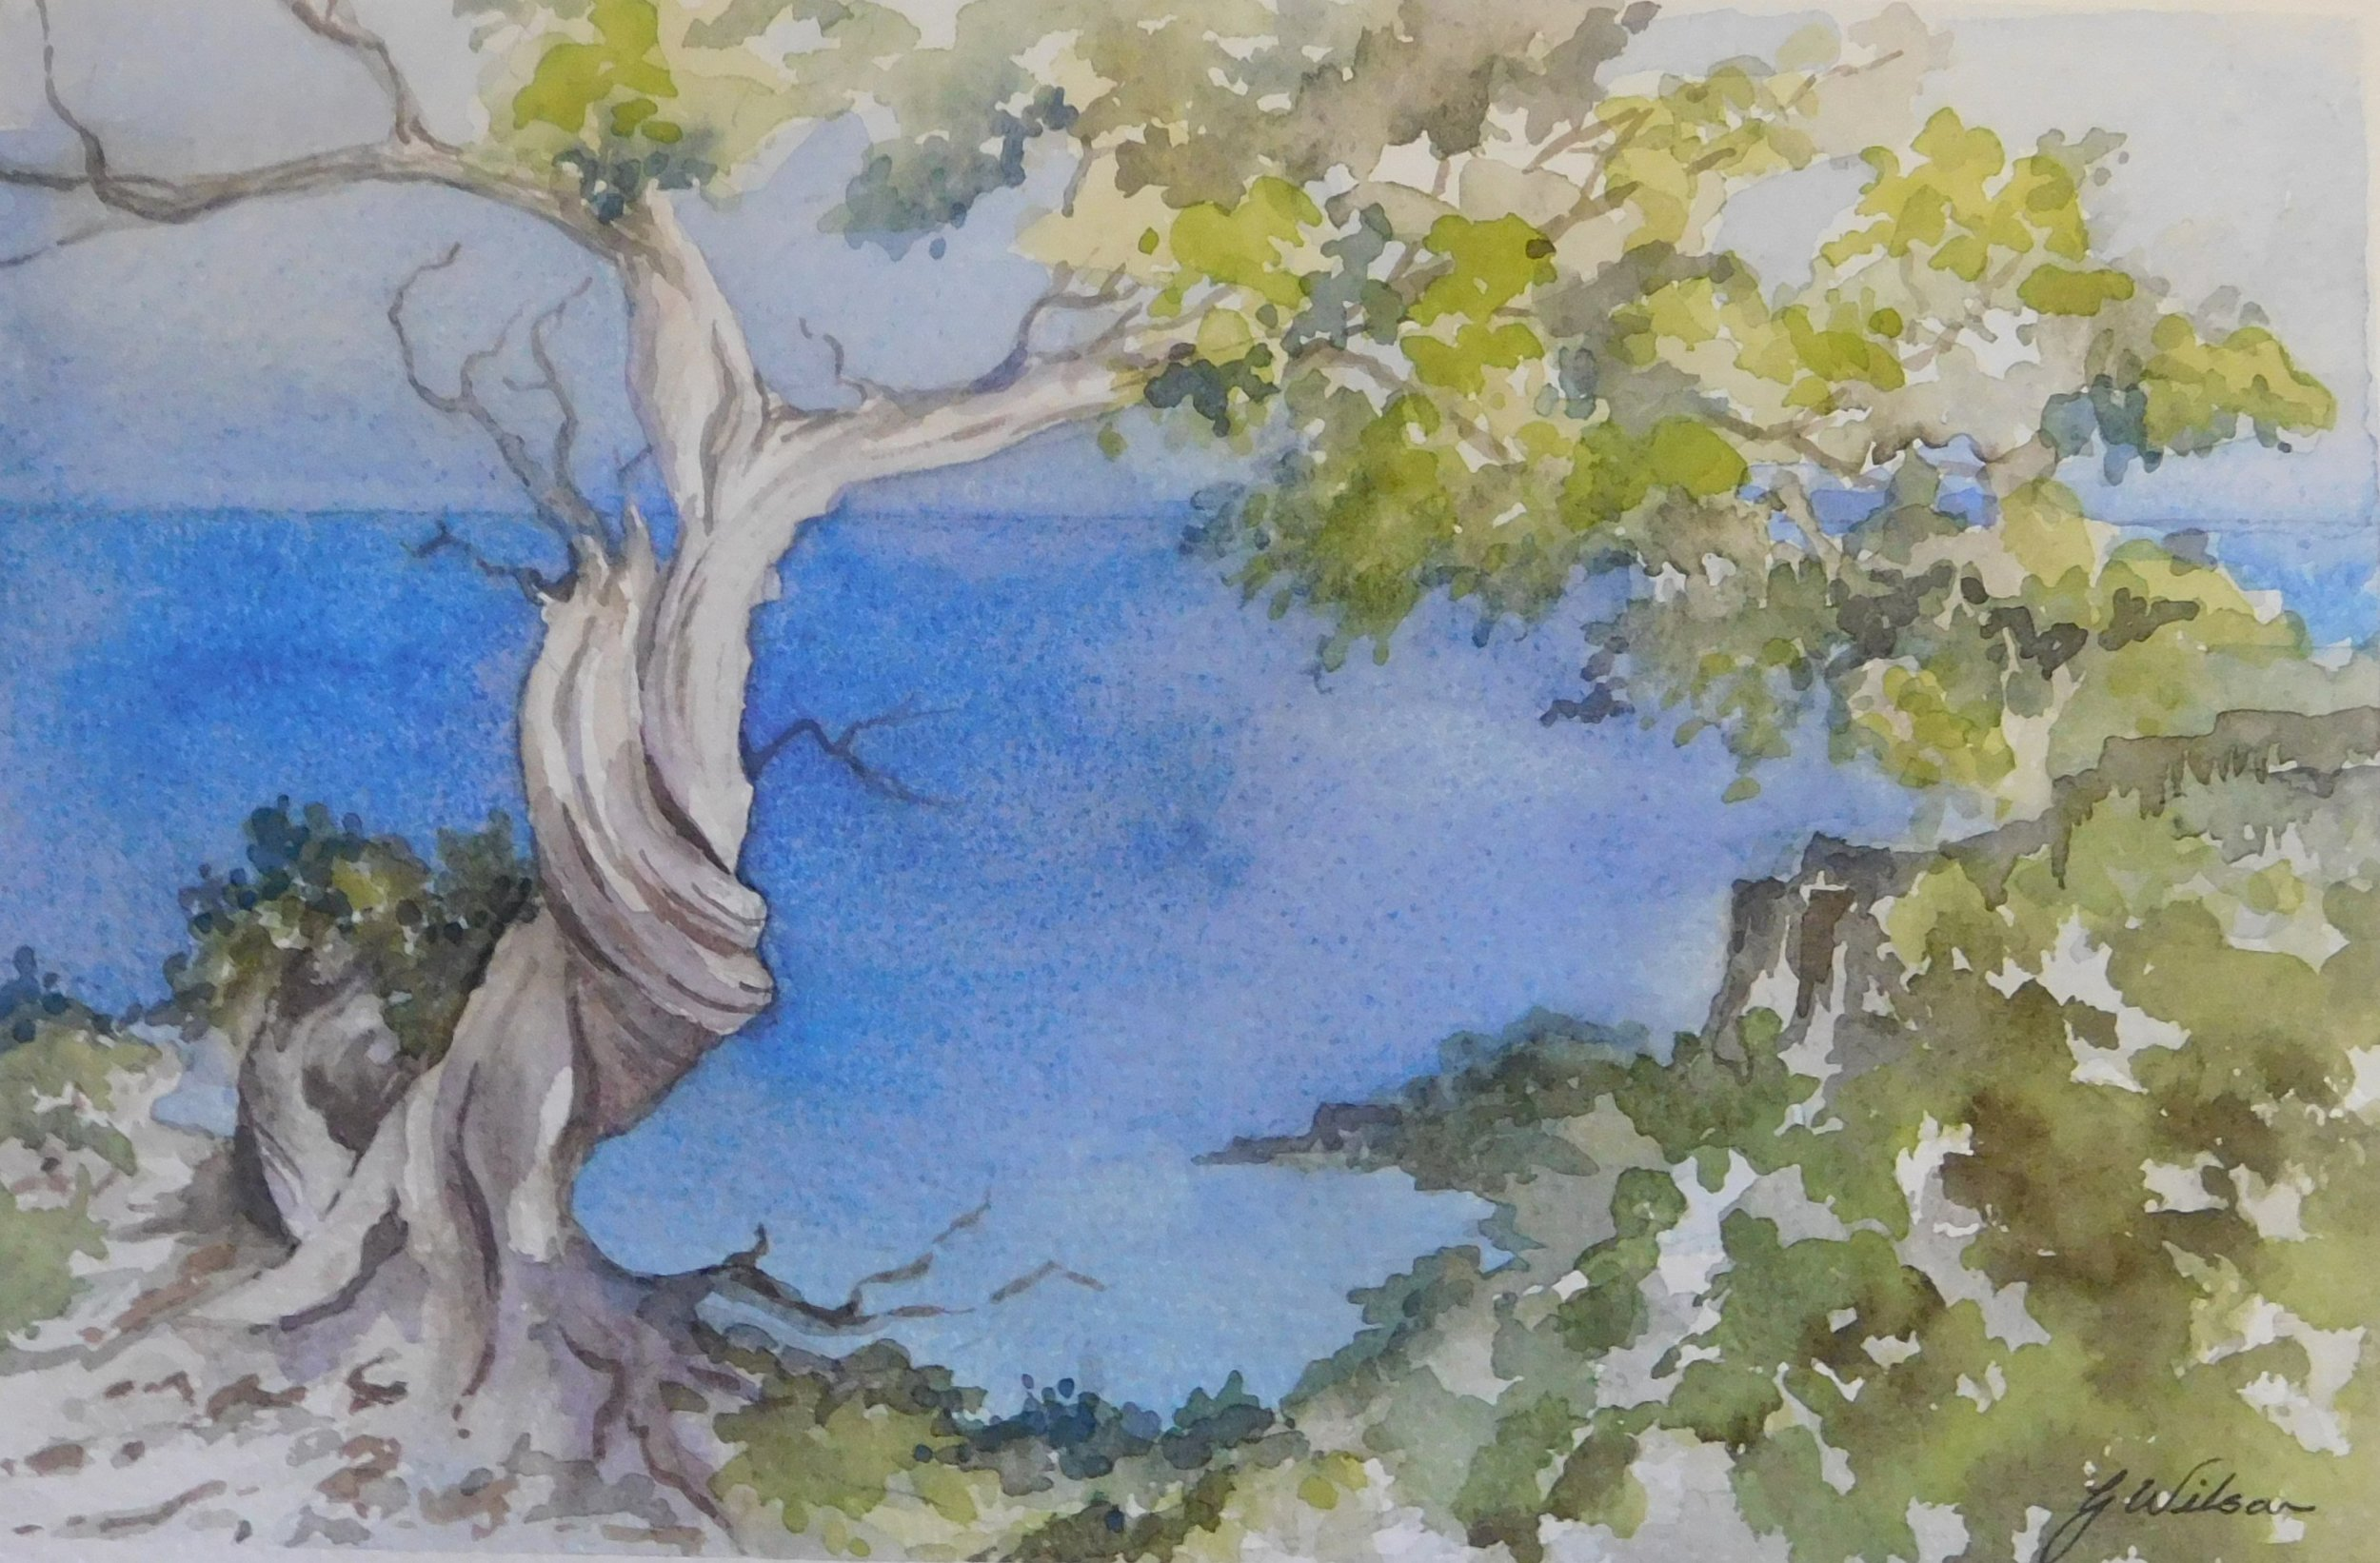 01A GLENDA WILSON, TWISTED OLIVE TREE, WATERCOLOUR ON PAPER